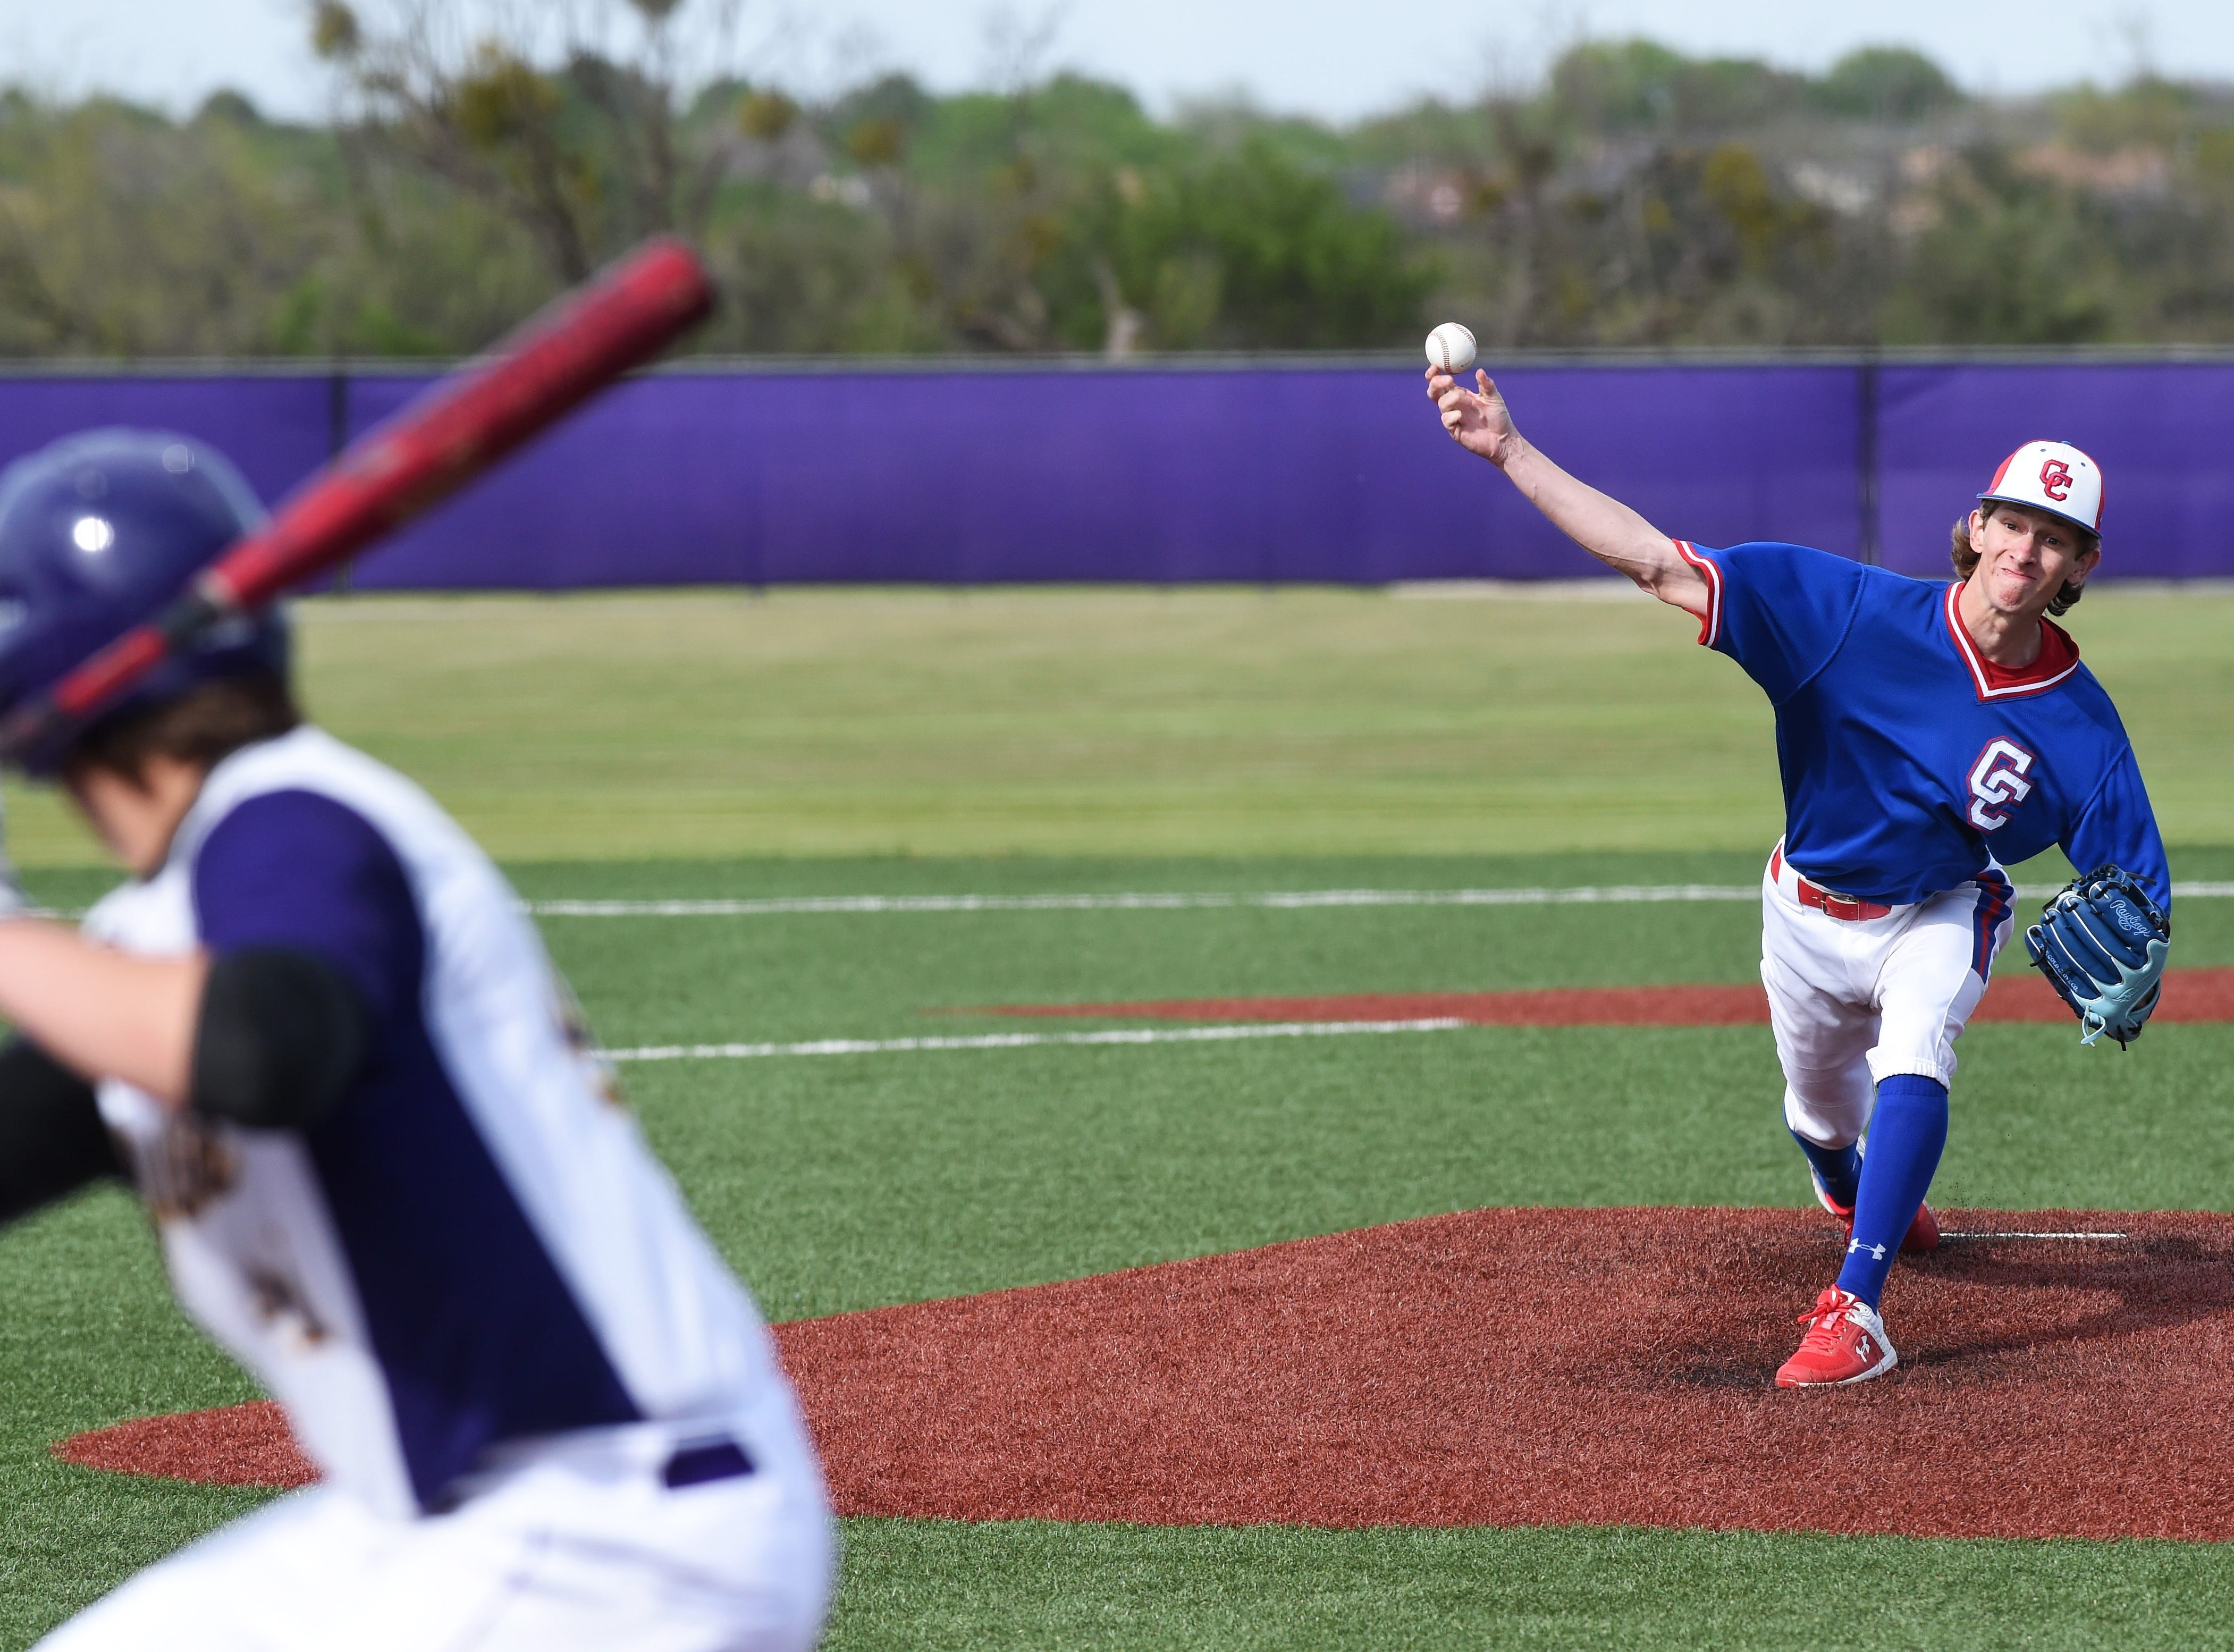 Cooper's Matthew Shira pitches to Wylie's Tyler Spears (41) at Bulldog Field on Friday, April 12, 2019. The Bulldogs won 4-3.